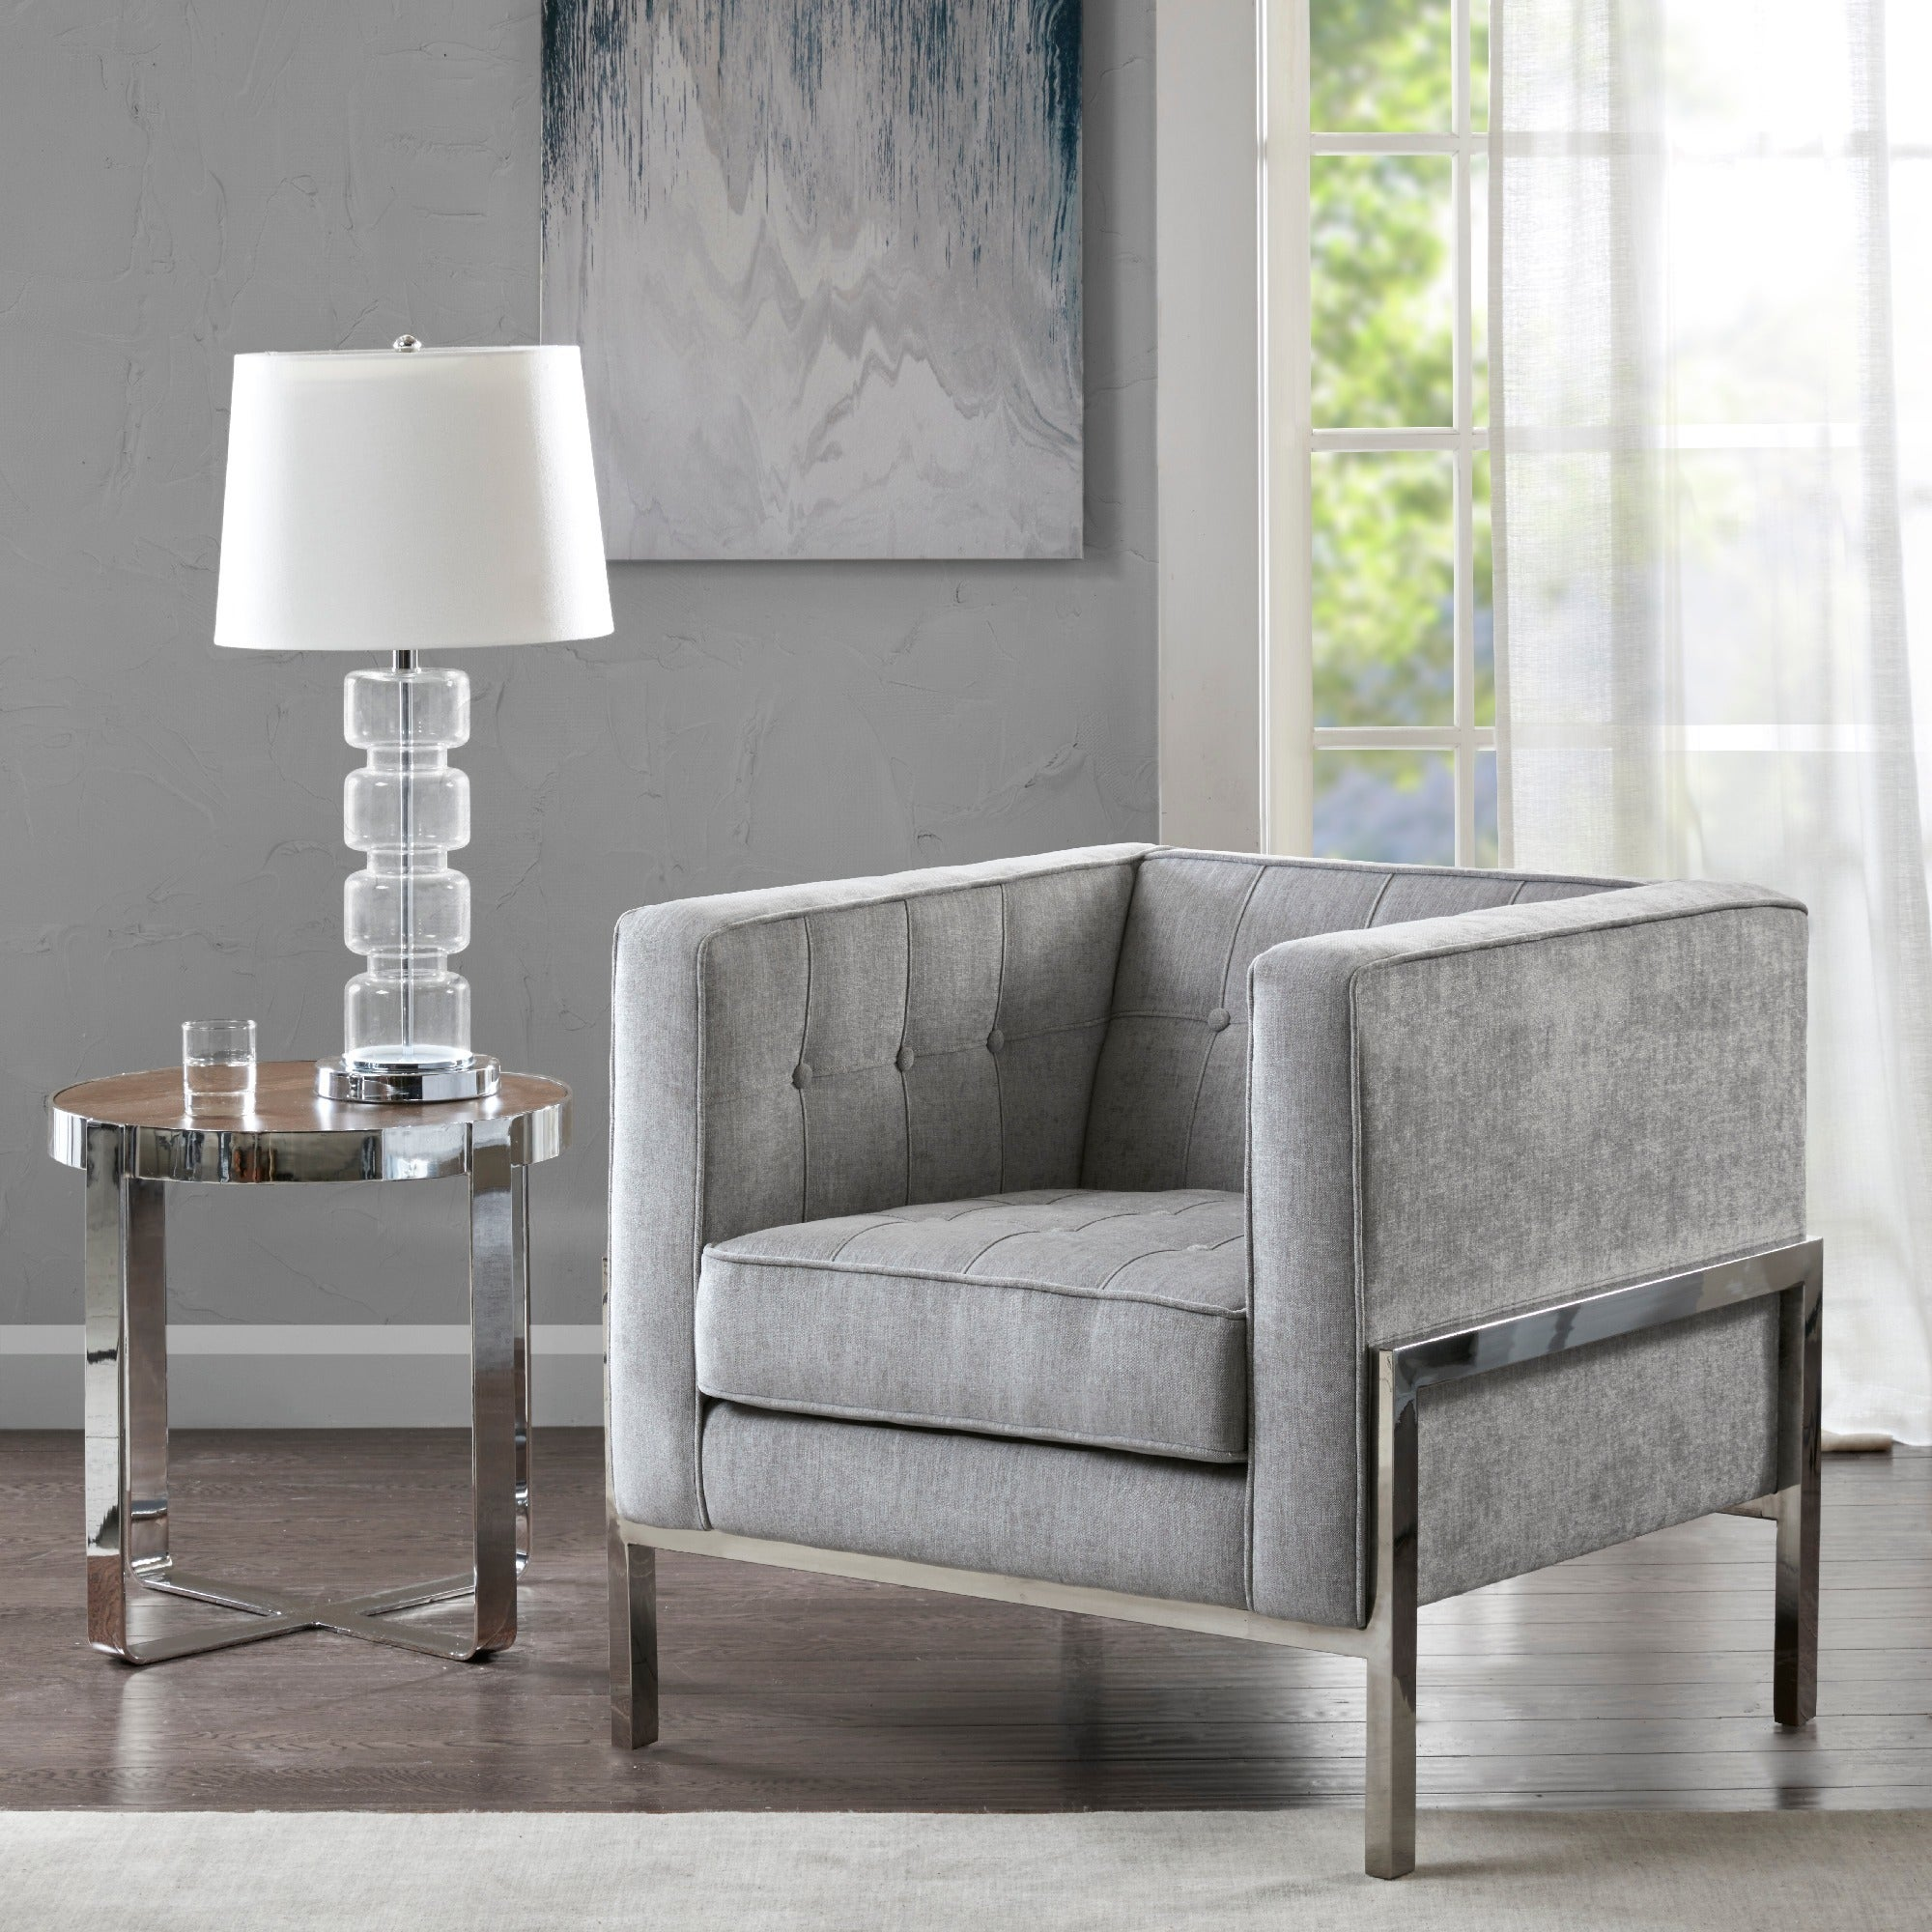 Shop madison park ruby gray silver accent chair free shipping today overstock com 15975025